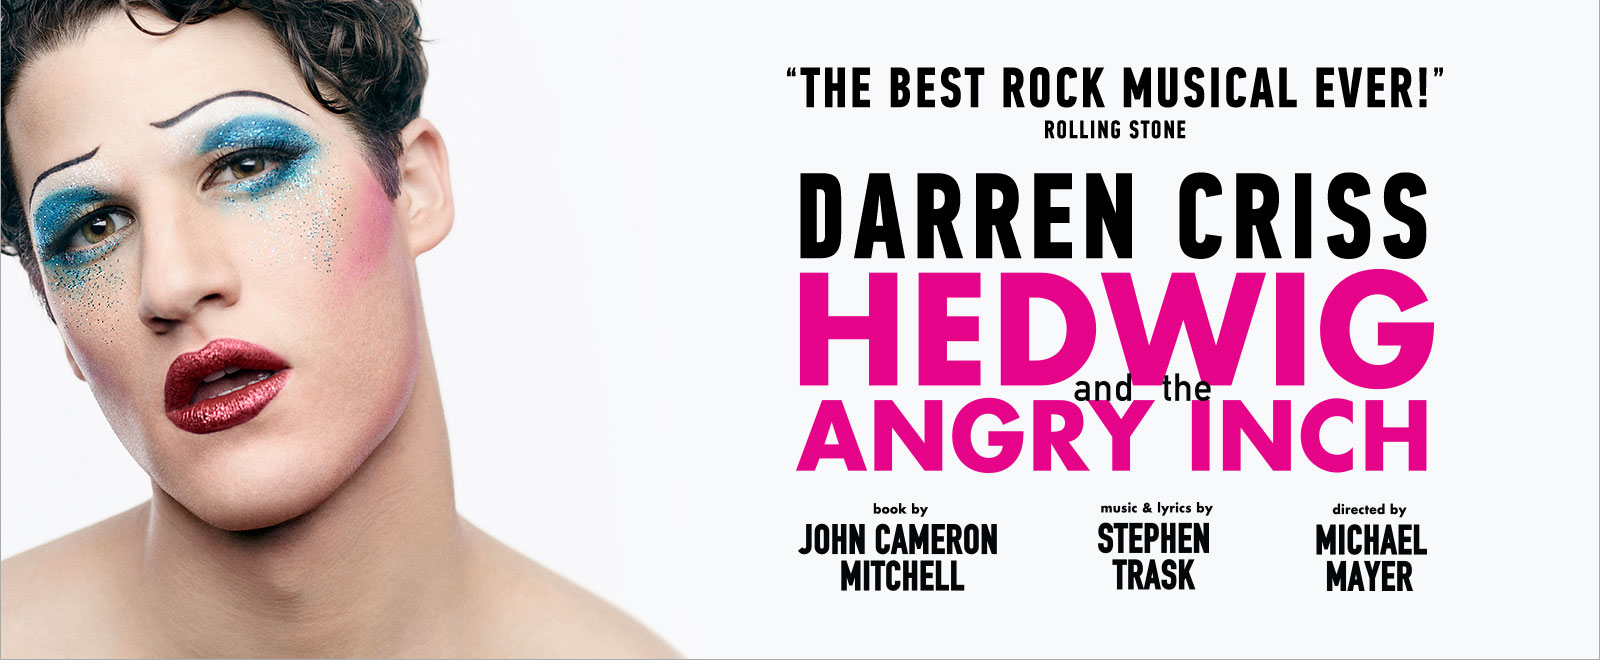 The Best Rock Musical Ever! | Darren Criss | Hedwig and the Angry Inch